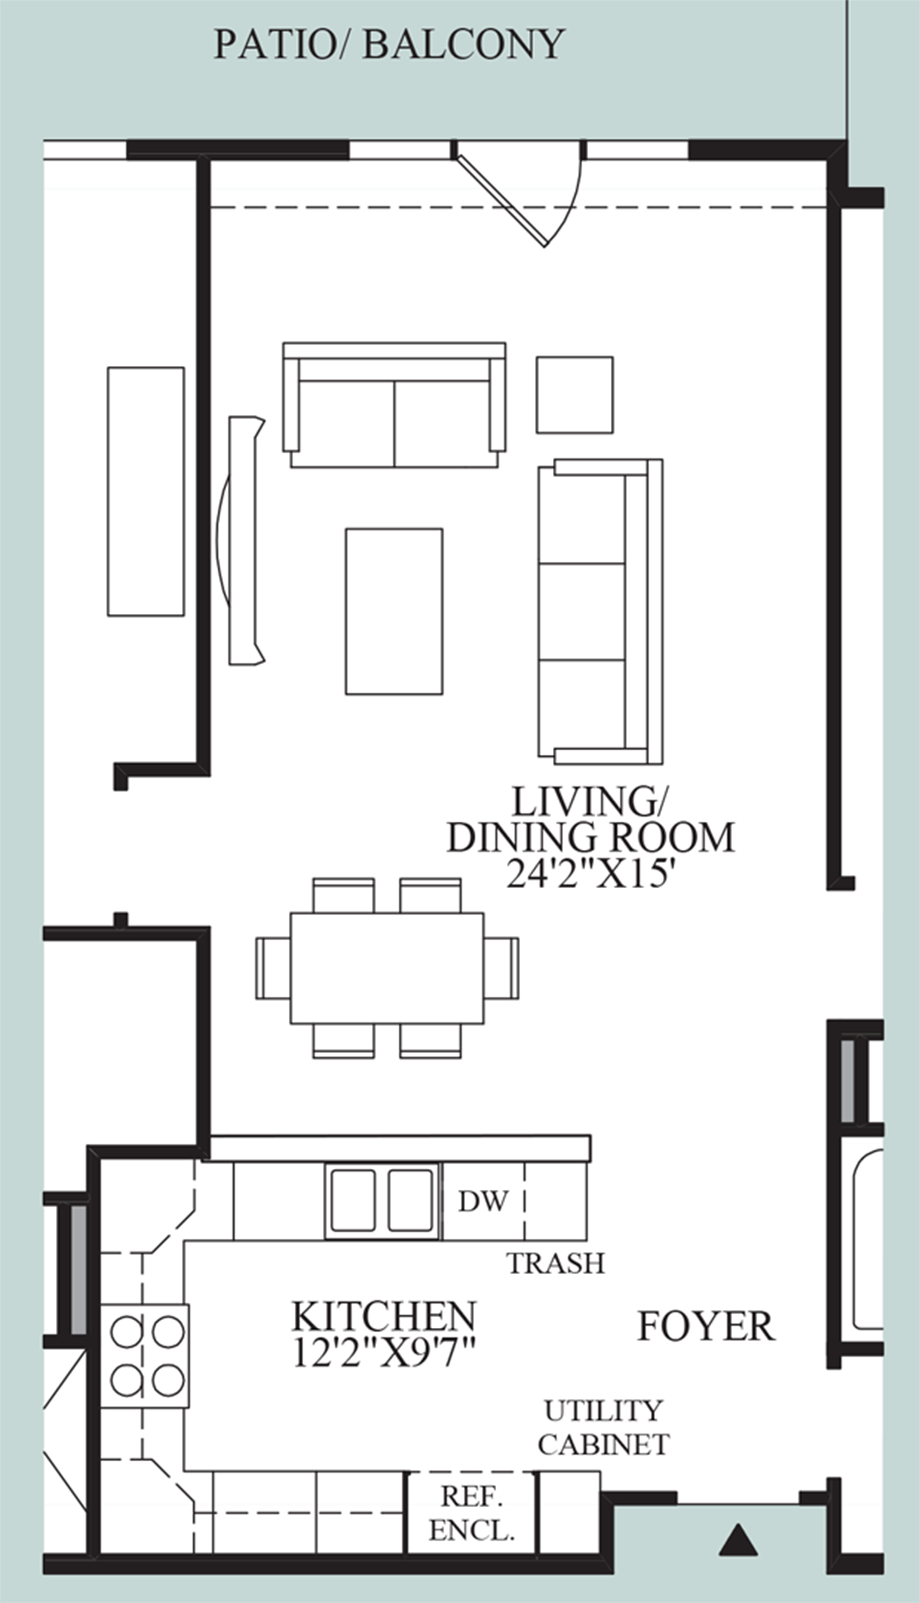 Patio/Balcony Floor Plan